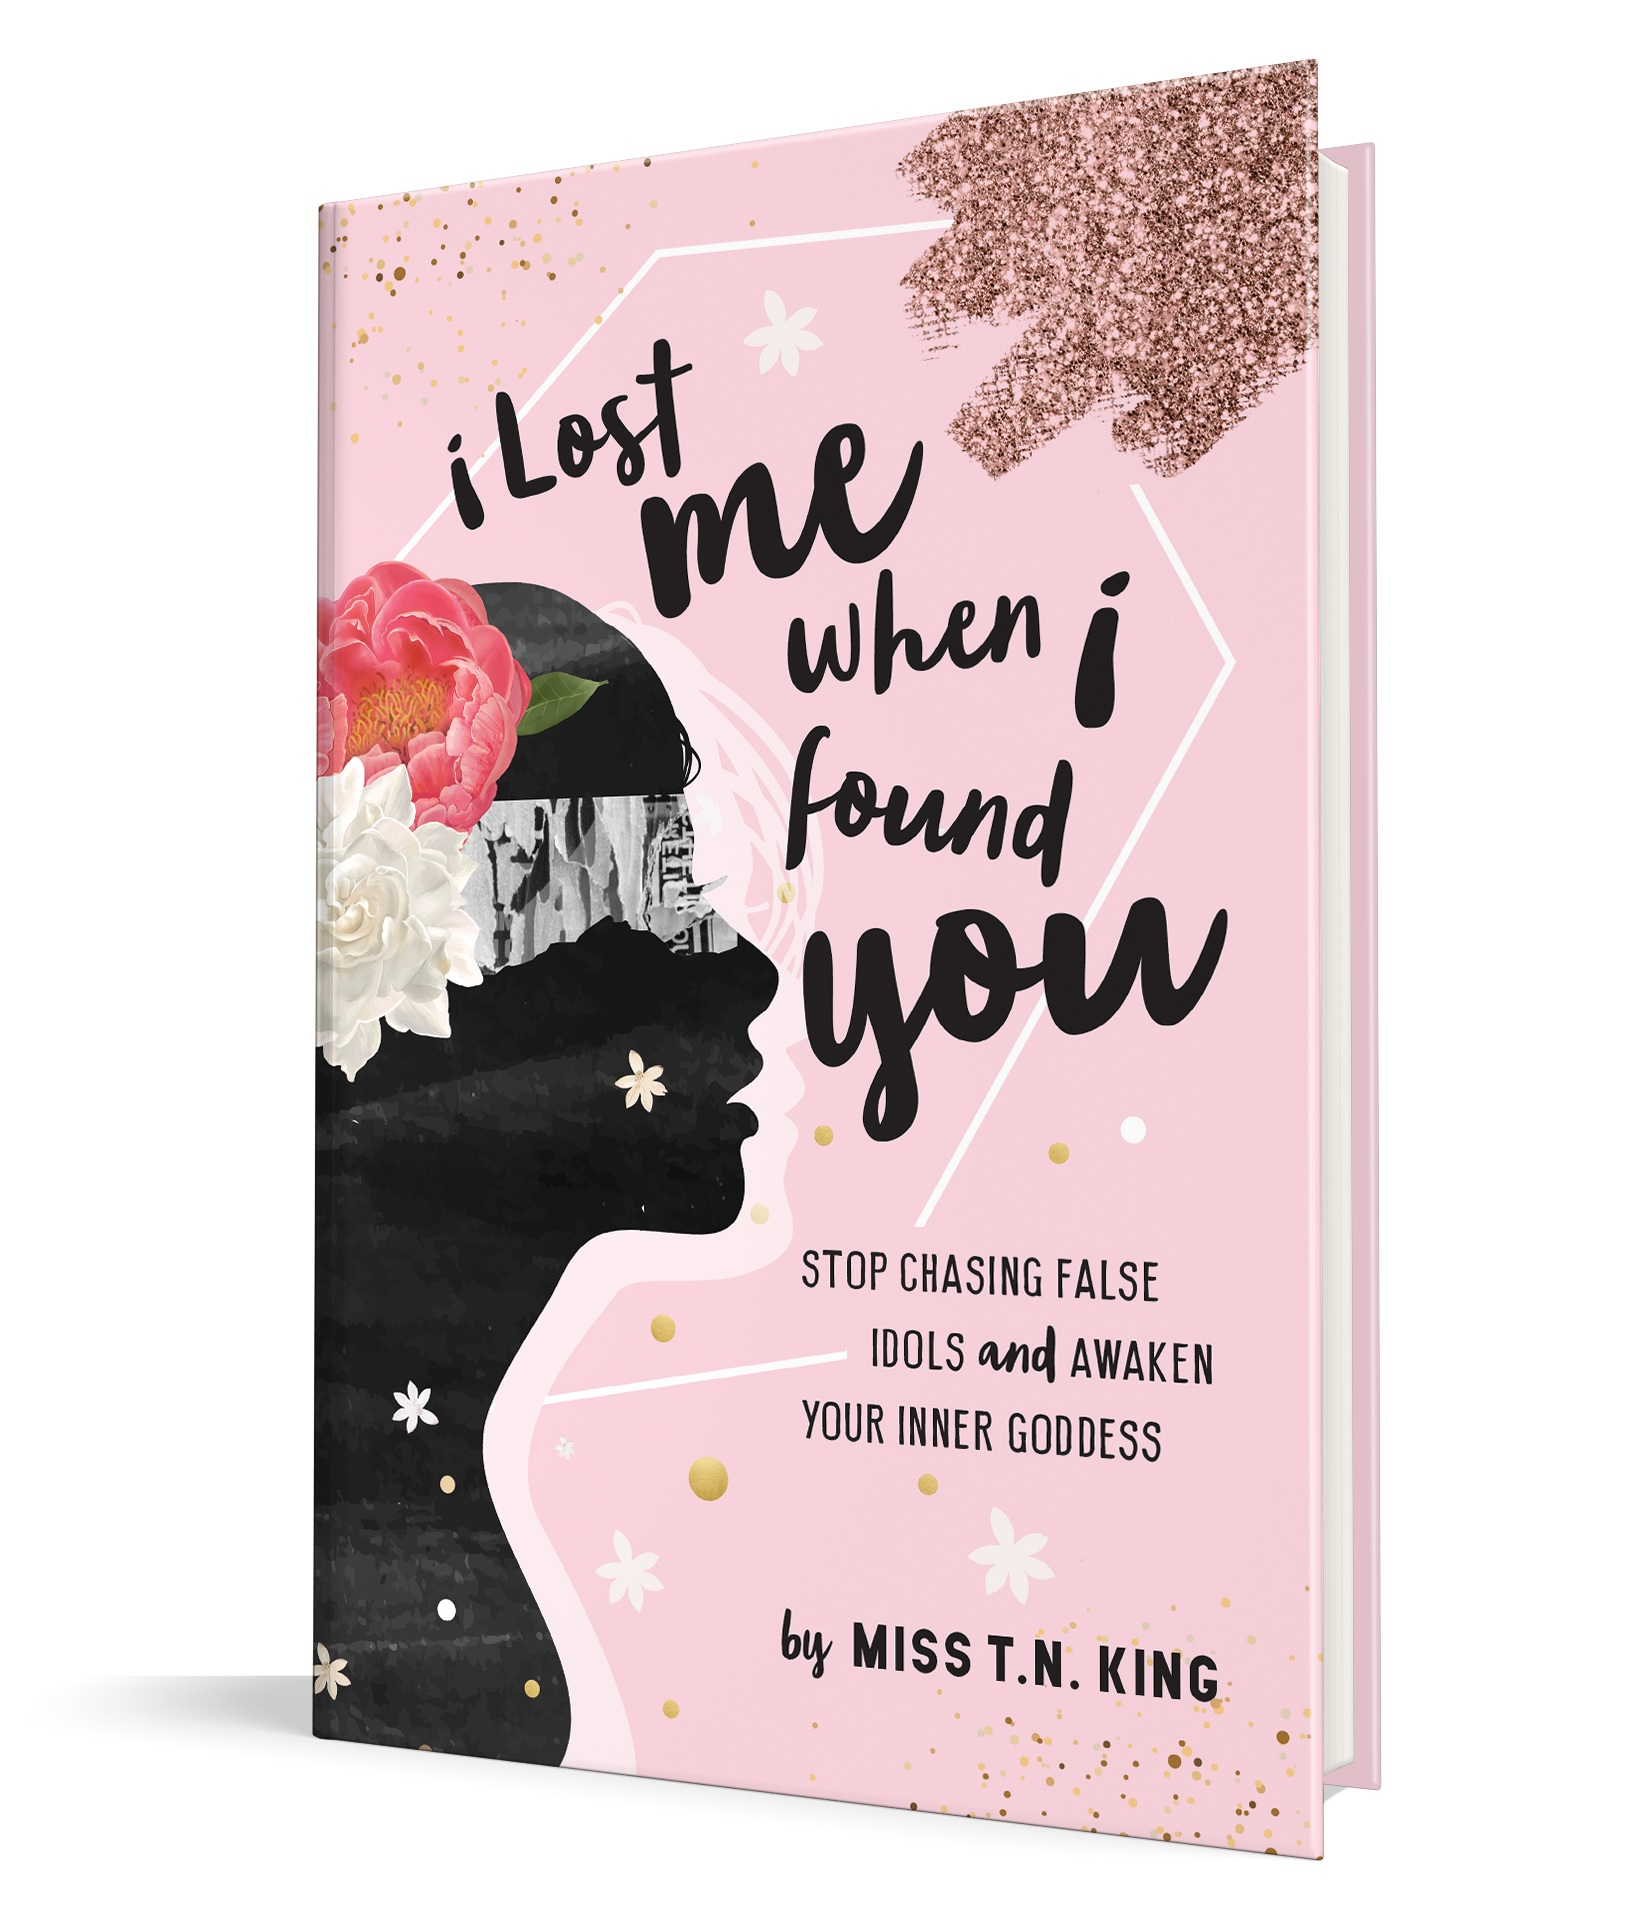 """What's Included in the Pre-Order Sale? - Everyone who pre-orders """"I Lost Me When I Found You"""" will receive an author-signed hard cover book with full color interior pages. The pre-order sale will be 15% off of the listed price and you will receive your author-signed book well in advance before its available to the general market and retailers. This is an EXCLUSIVE offer available for a LIMITED-TIME ONLY! Pre-ordered books will be delivered to customers between early-mid to mid-late August, depending on the order date."""